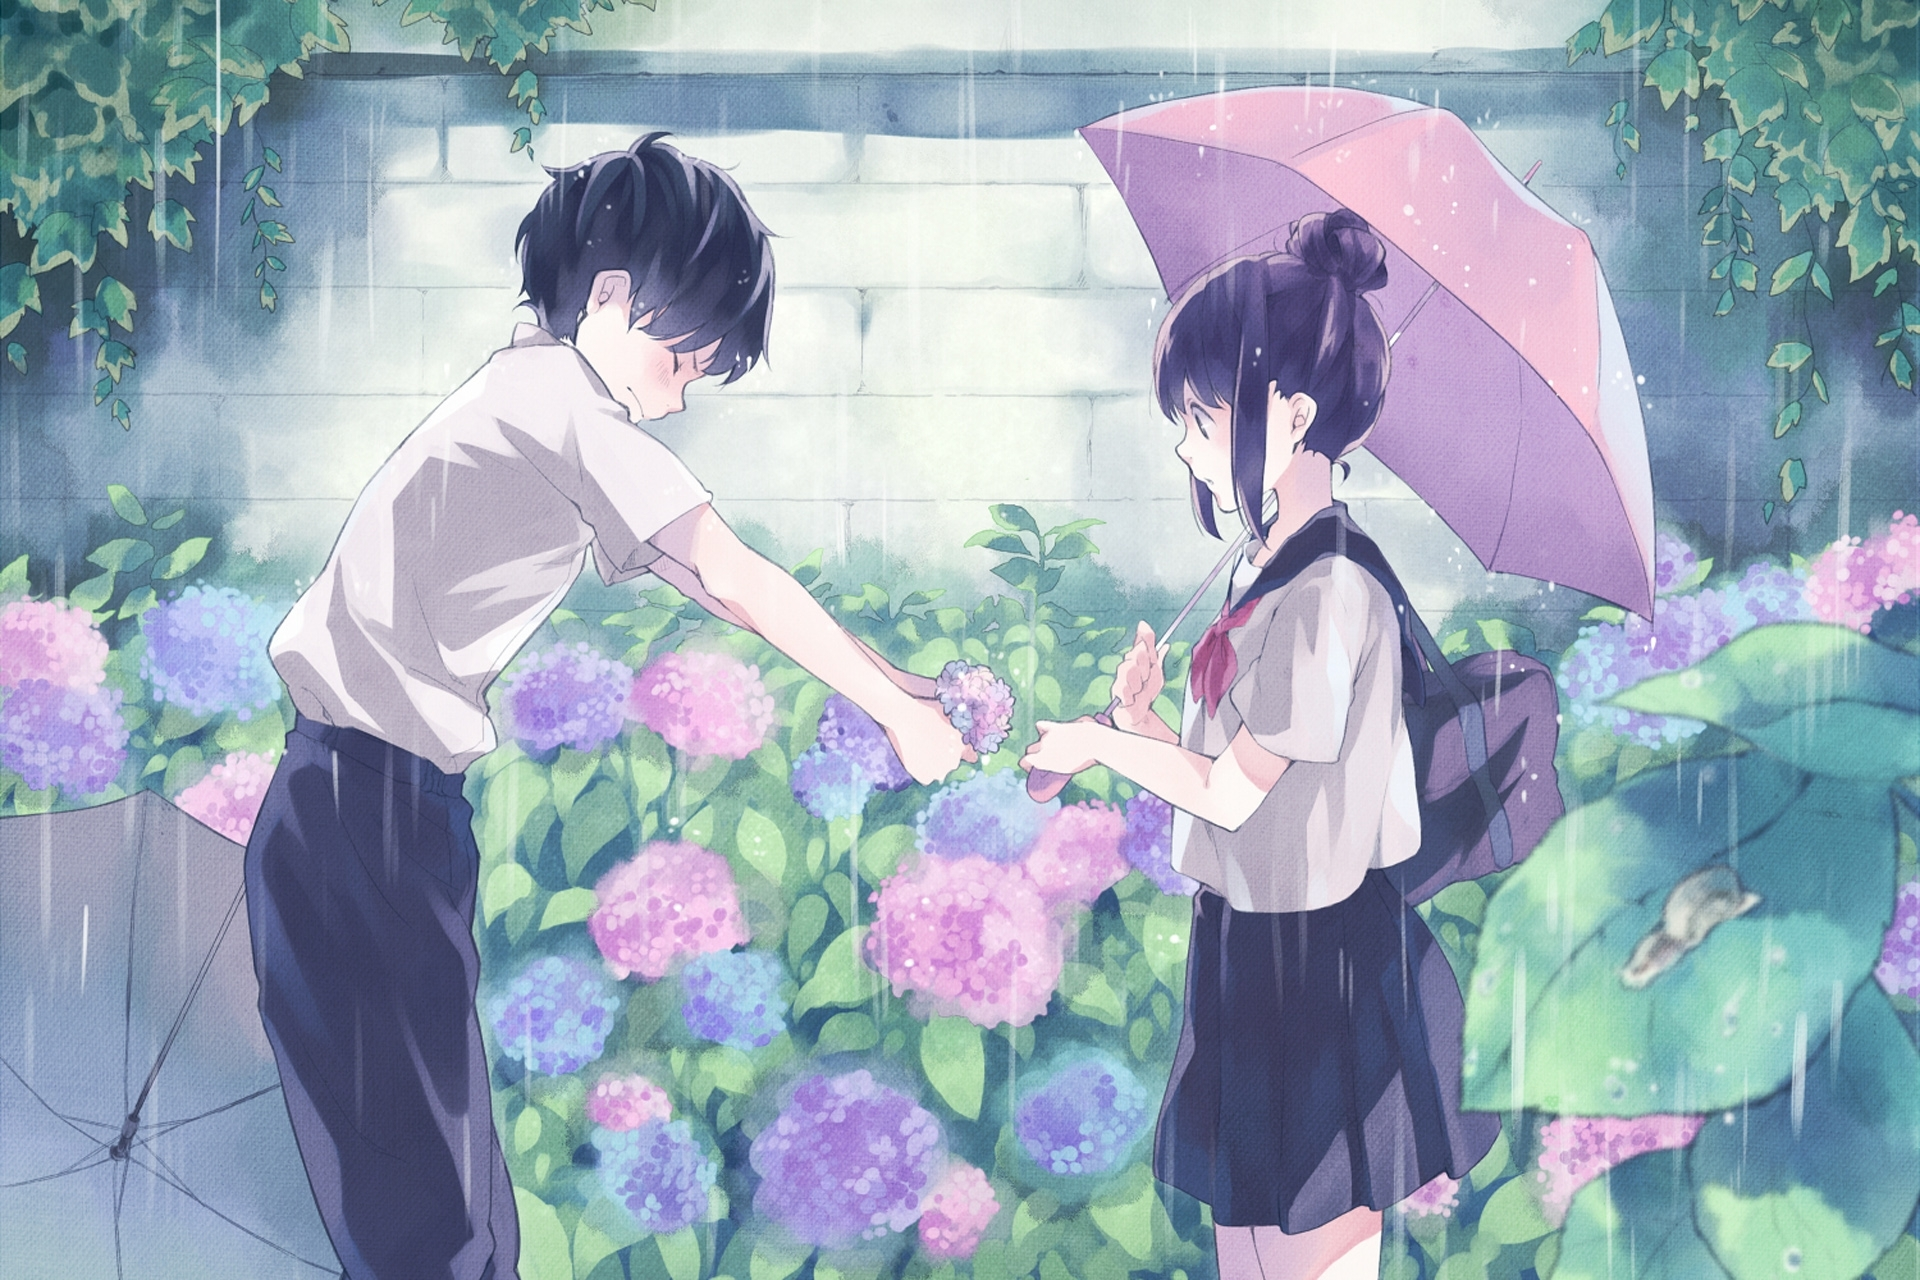 beautiful anime couple wallpaper hd images – one hd wallpaper